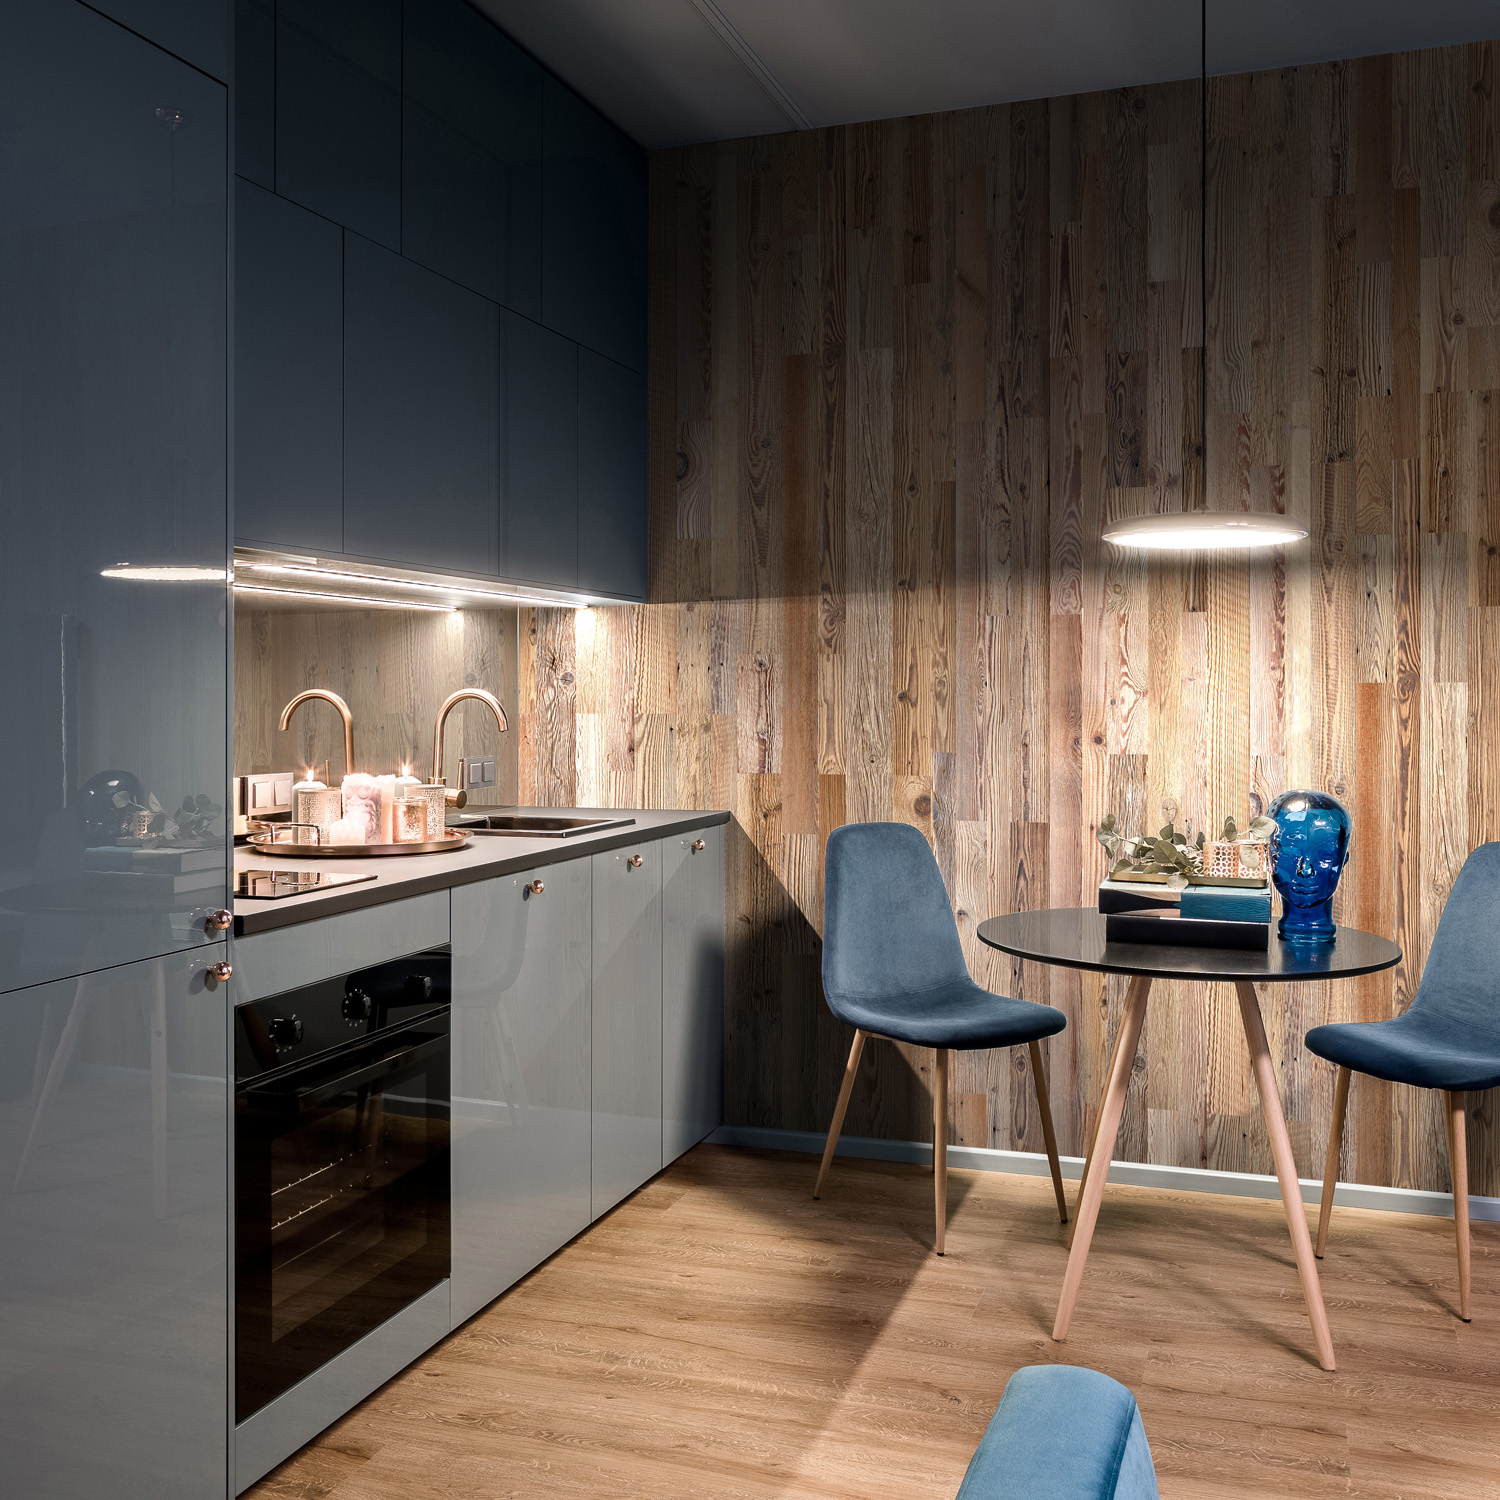 Kitchen interior with reclaimed wood boards 2021